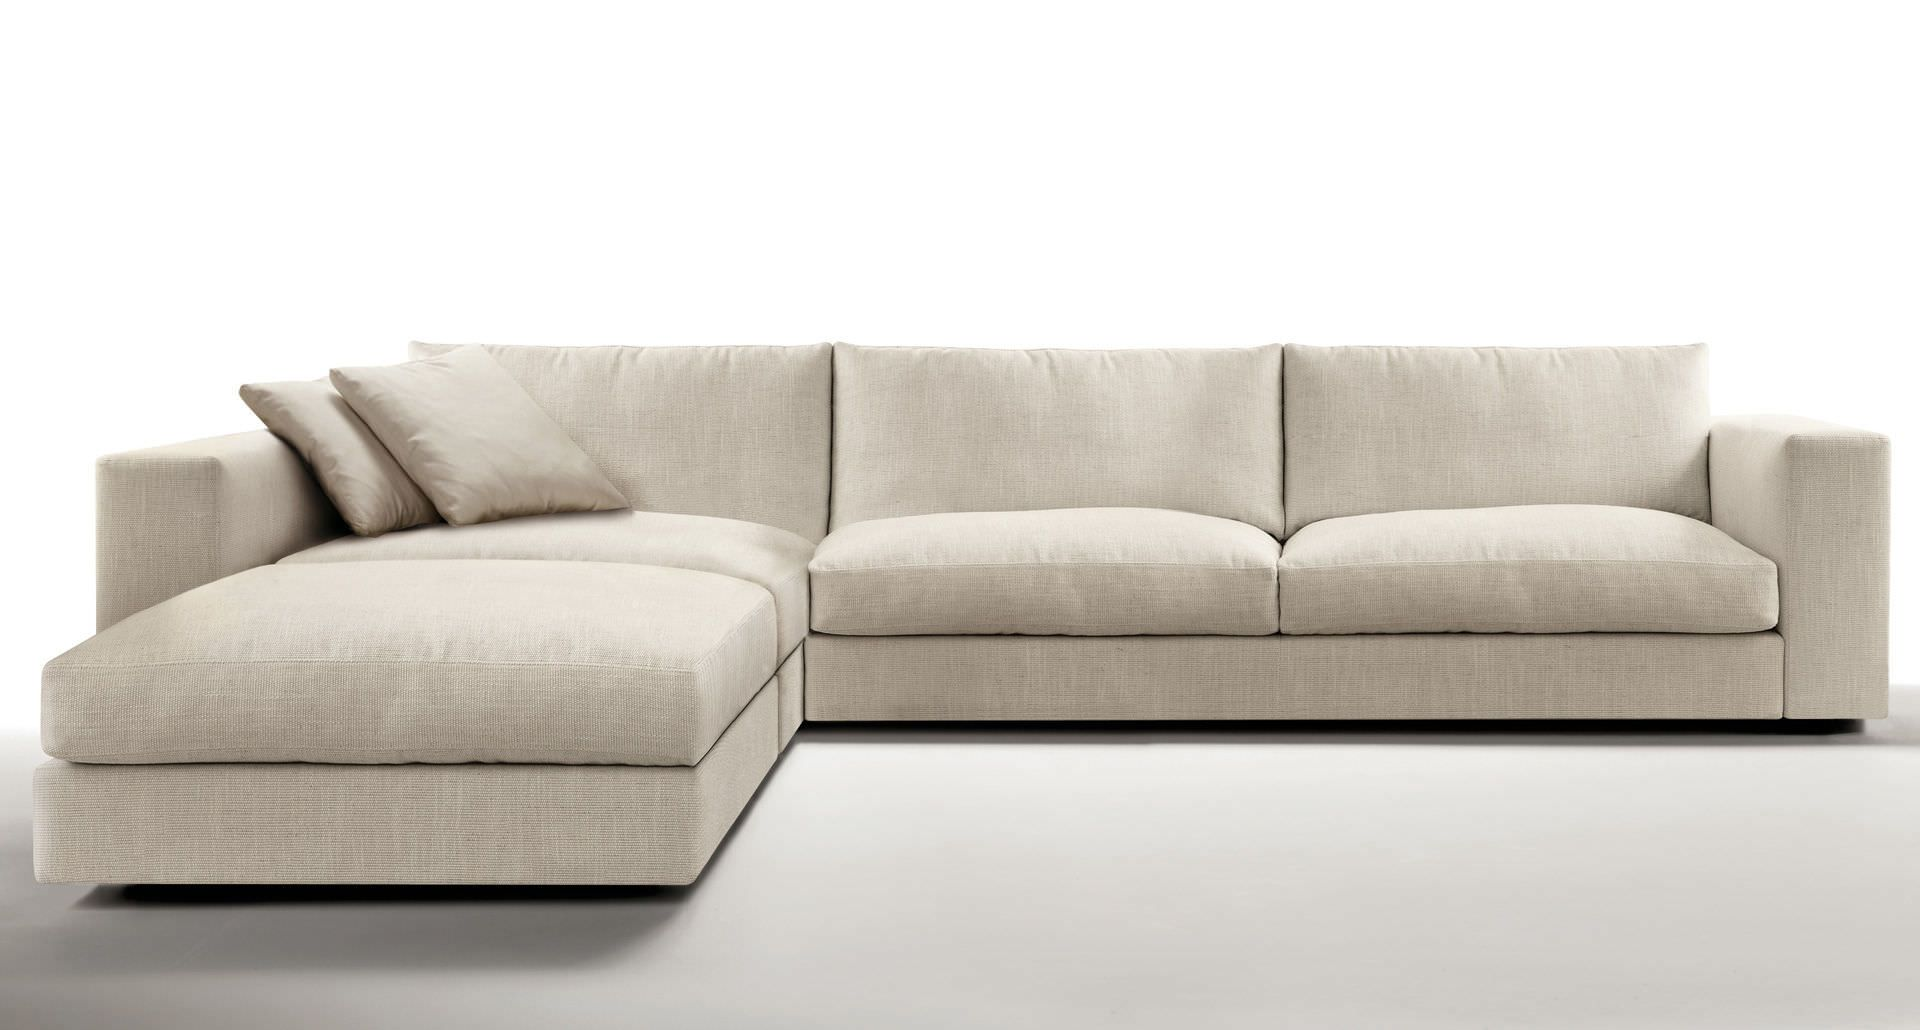 Corner Sofa In India Corner Sofa Manufacturers In India Corner Home Decoration Ideas